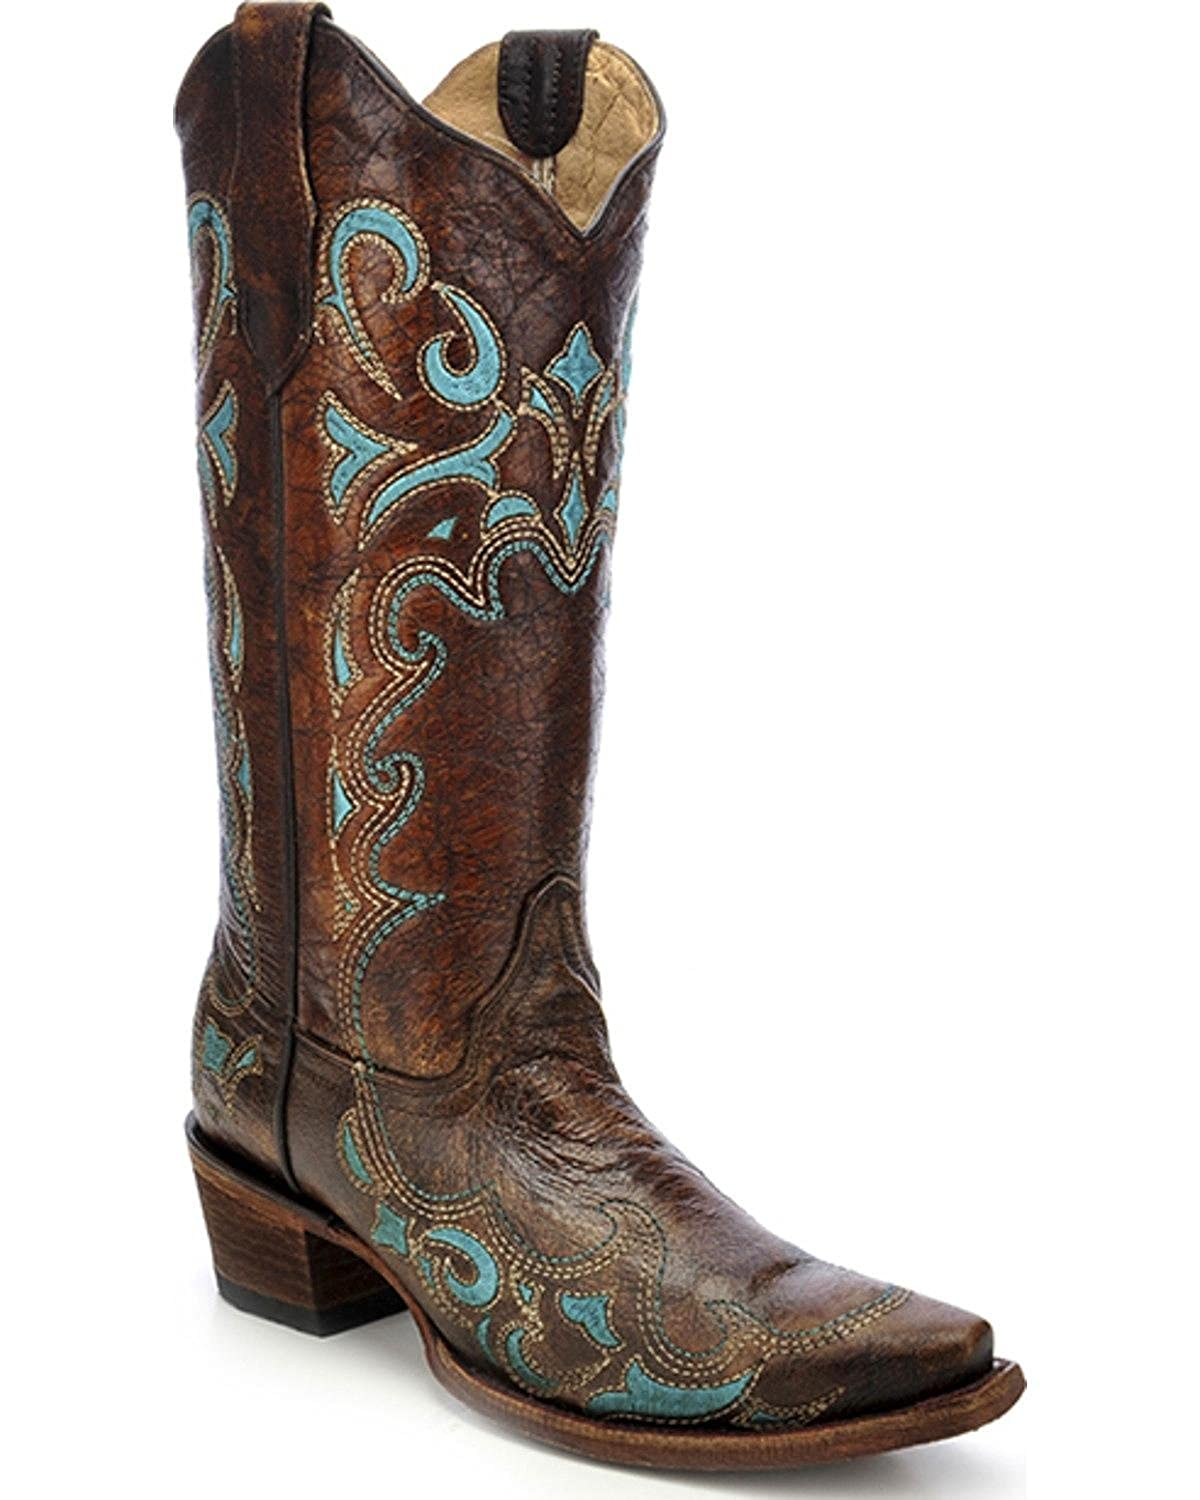 Image of CORRAL Womens Brown/Turquoise Side Embroidery, Size: 10, Width: M (L5193-LD-M-10) Equestrian Sport Boots